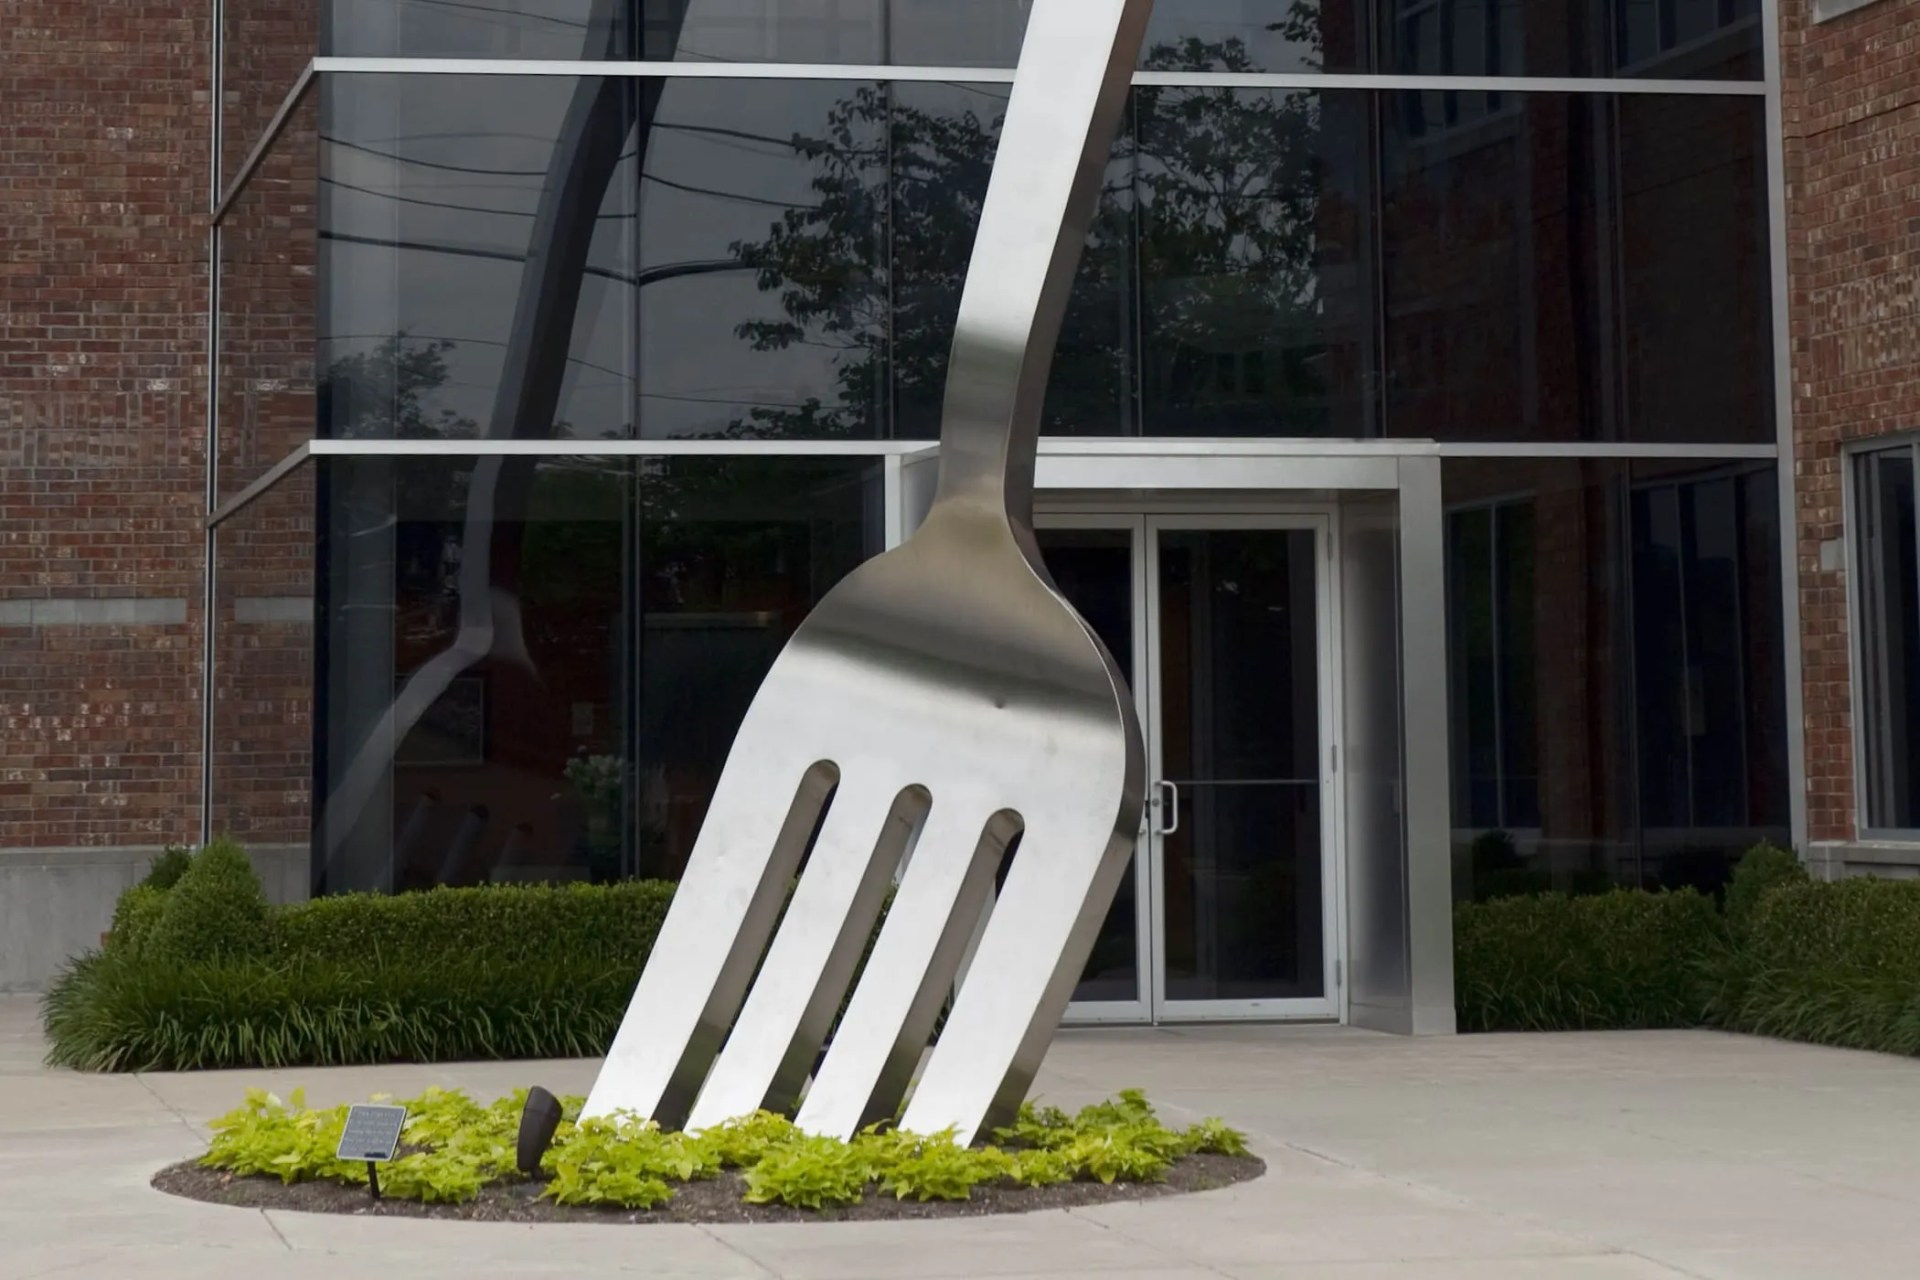 World's Largest Fork in Springfield, Missouri